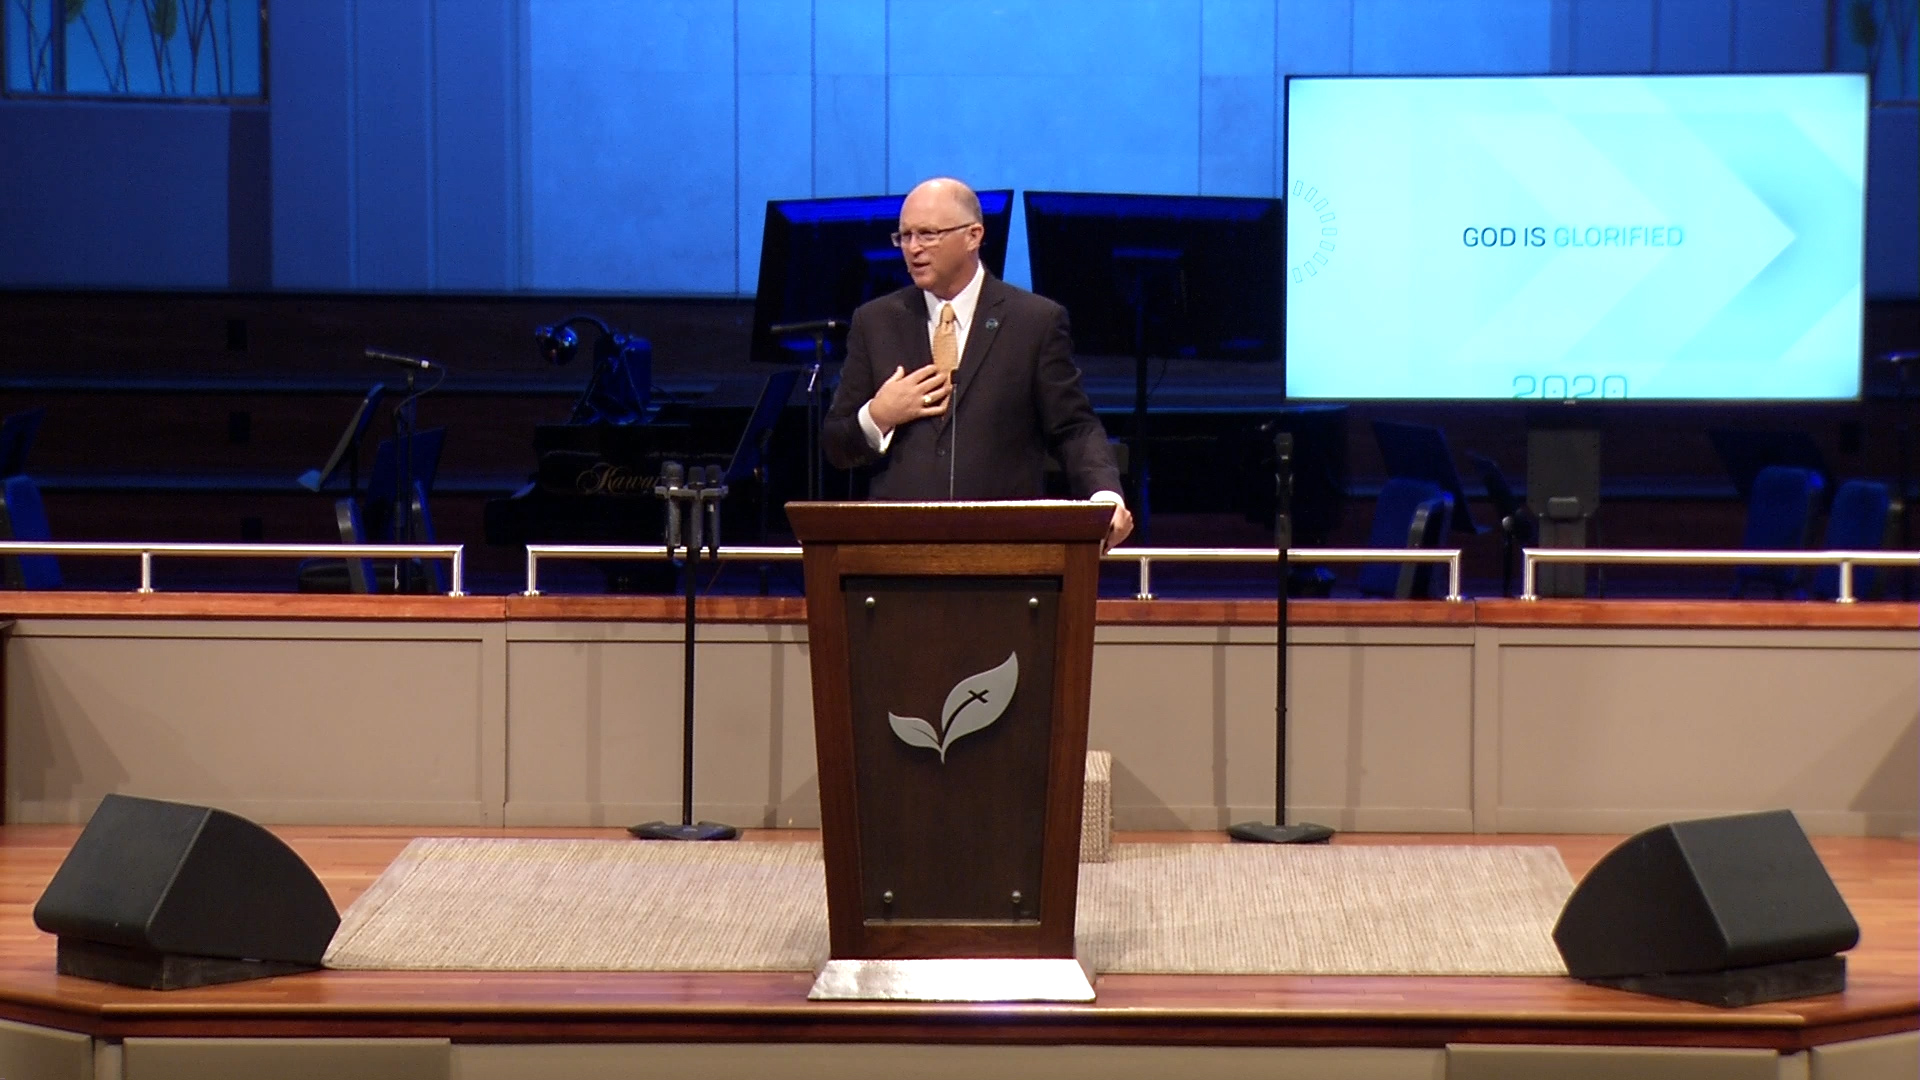 Pastor Paul Chappell: Reaching Forth with Care